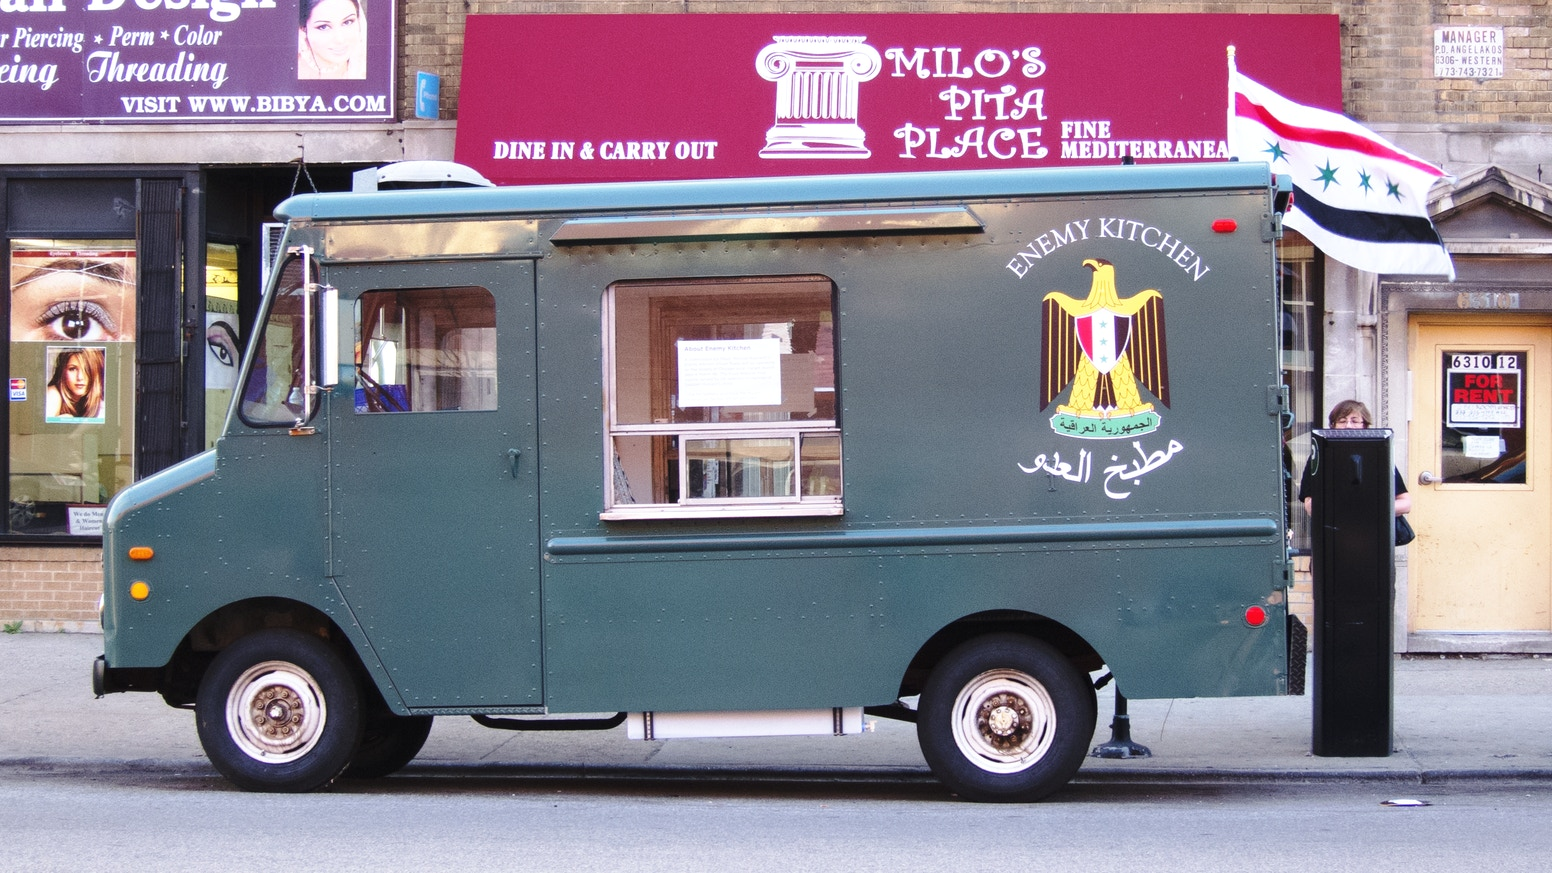 Bring This Mobile Food Truck Art Project To The MCA Where US Veterans Will Serve Free Iraqi Dishes At Community Events